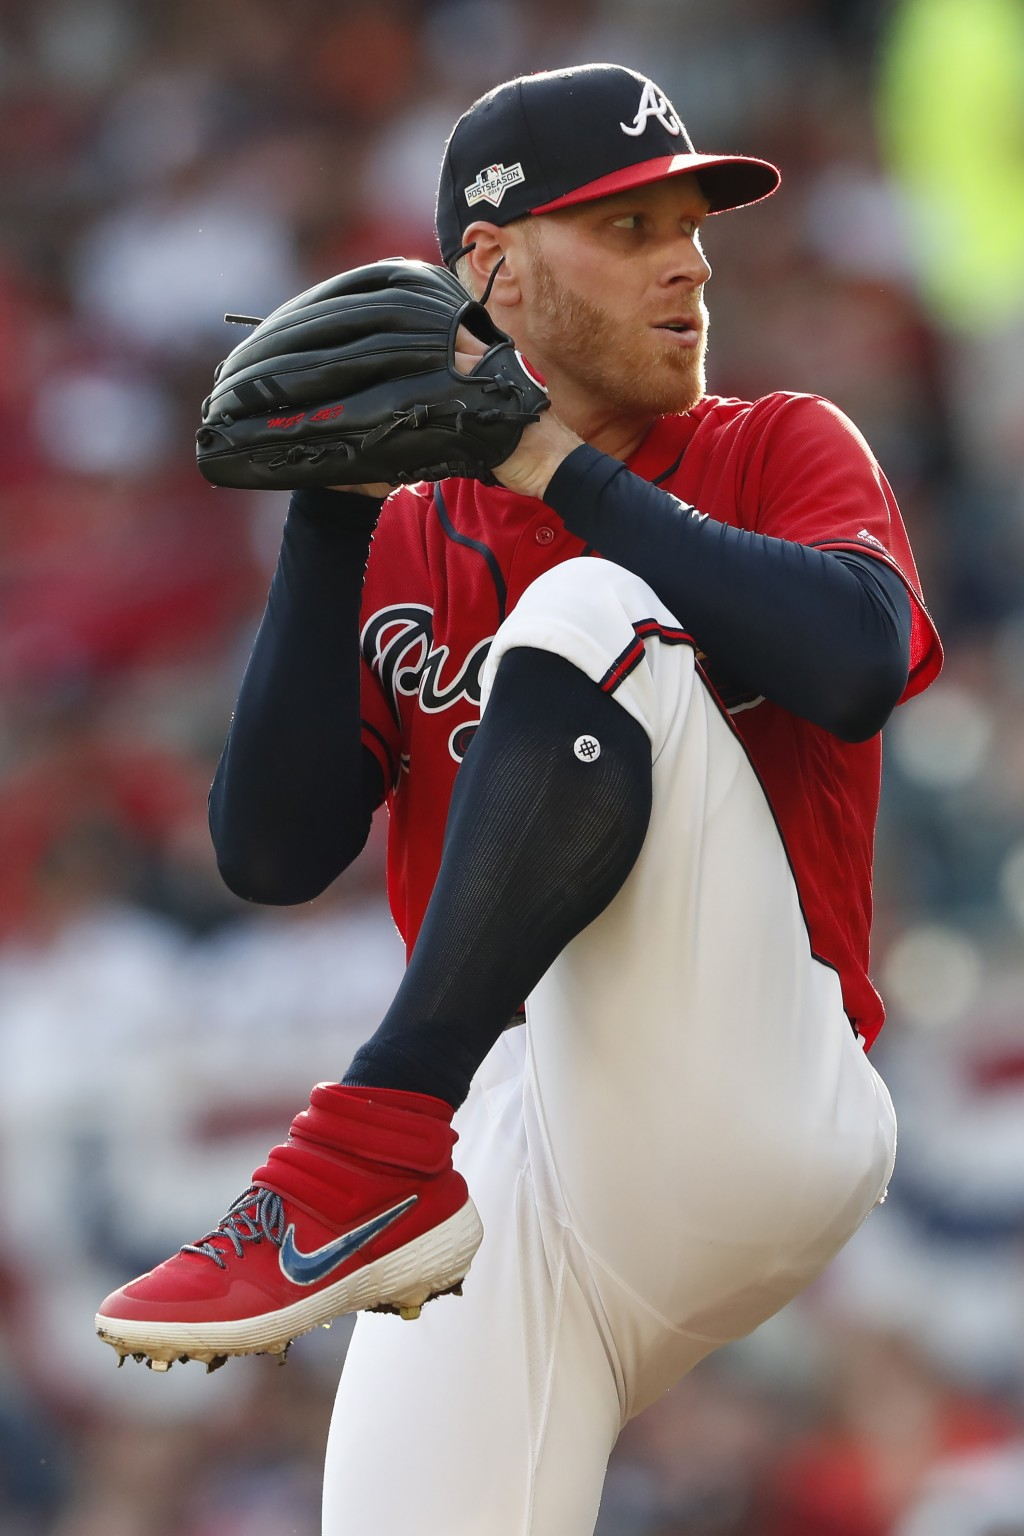 Atlanta Braves starting pitcher Mike Foltynewicz (26) works in the fifth inning during Game 2 of a best-of-five National League Division Series, Frida